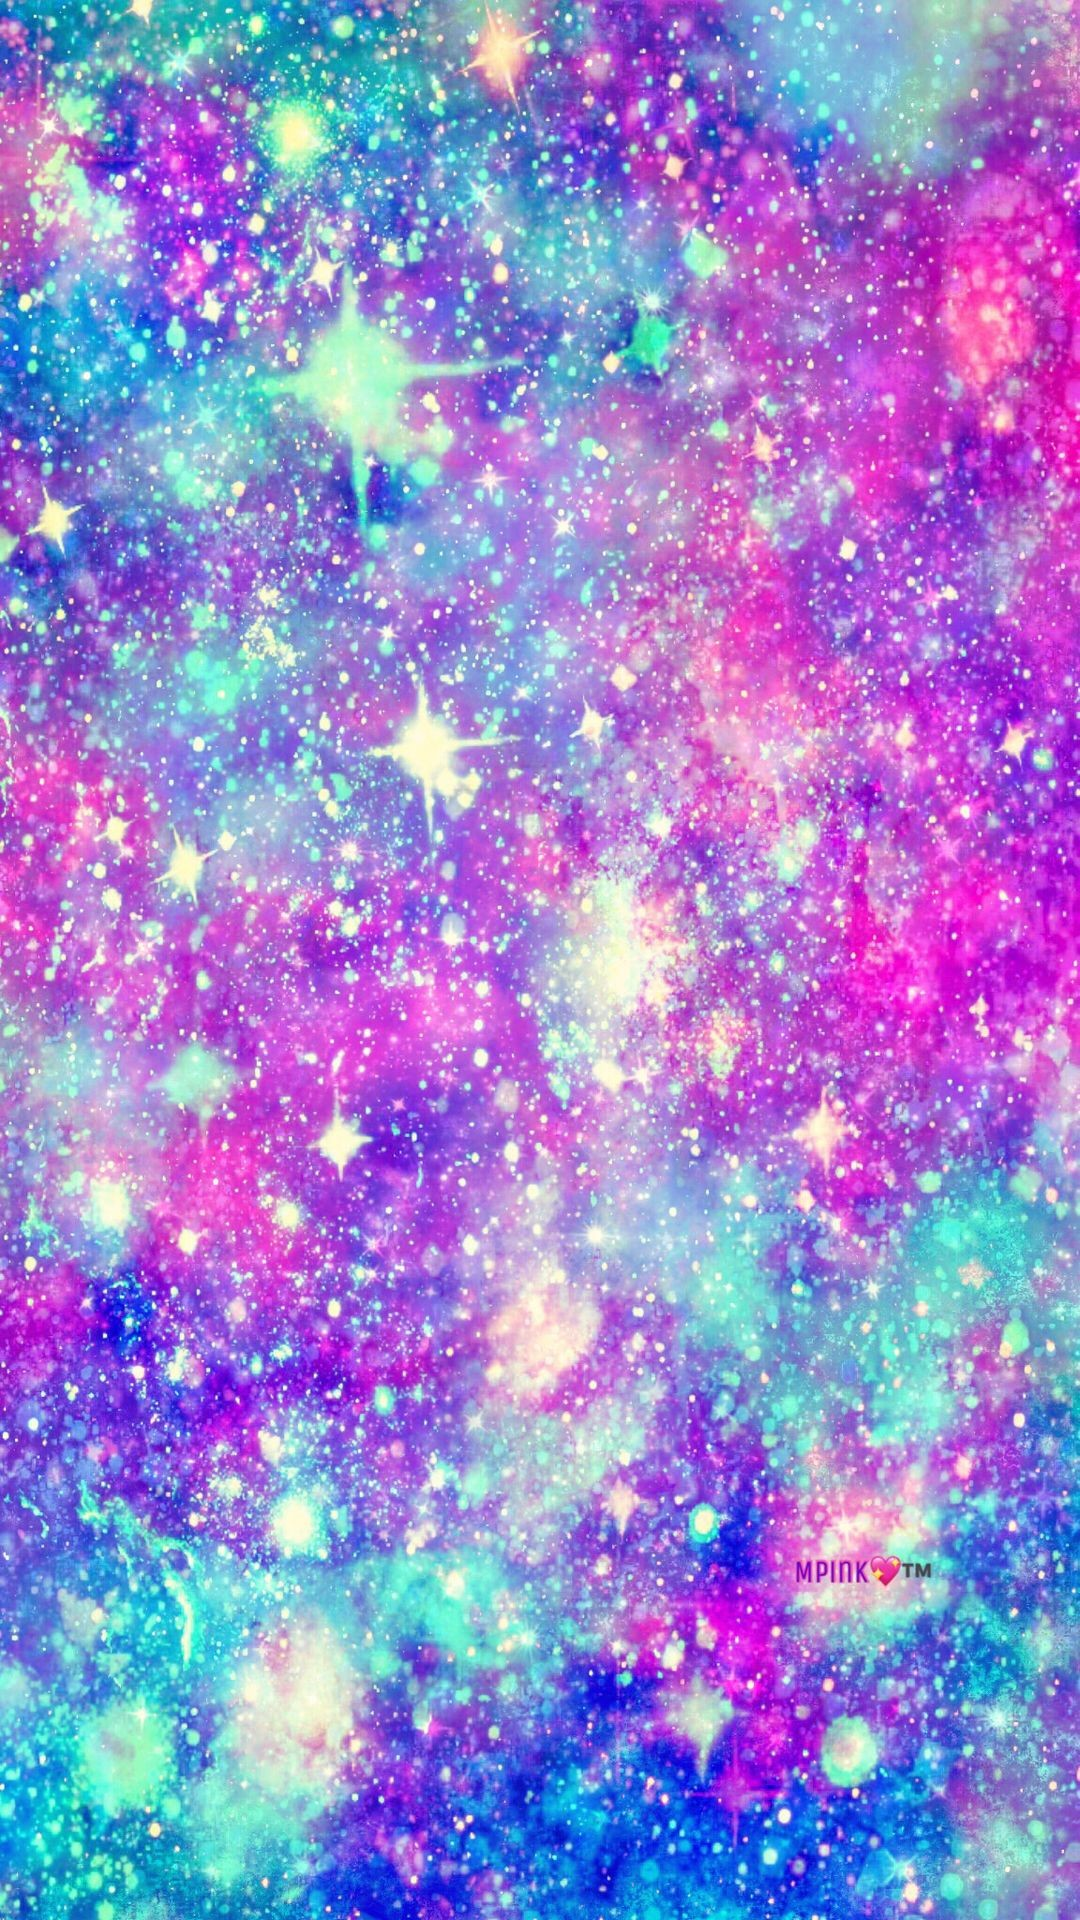 Res: 1080x1920, Glacial Galaxy Wallpaper #androidwallpaper #iphonewallpaper #wallpaper # galaxy #sparkle #glitter #